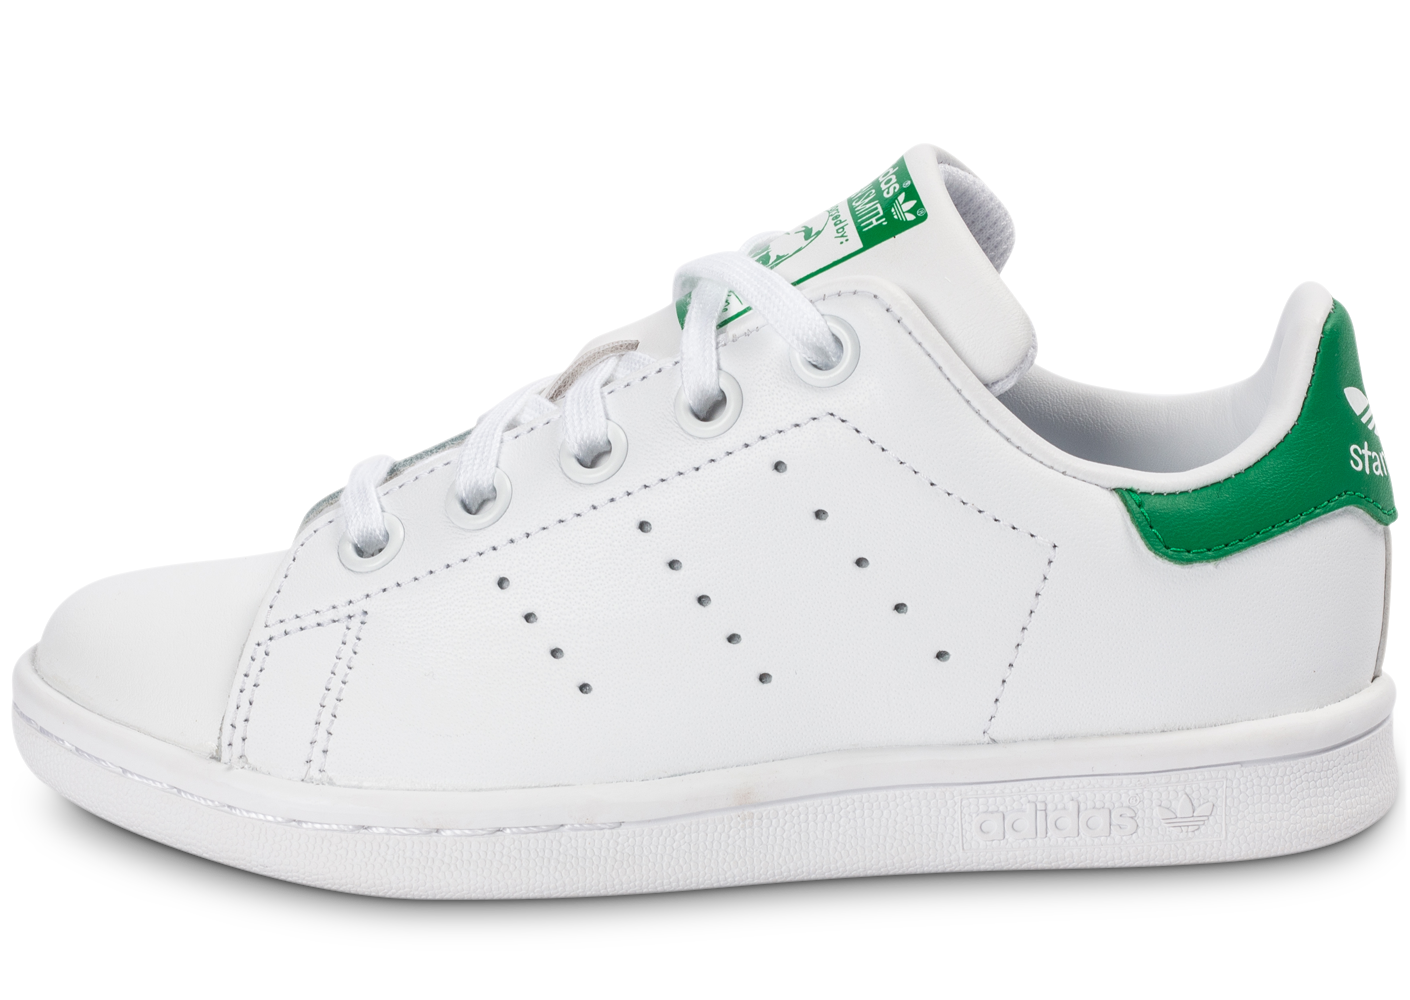 best sneakers 1e53d 35fc5 Product. Voir loffre. 55 · adidas stan smith enfant blanc vert ...